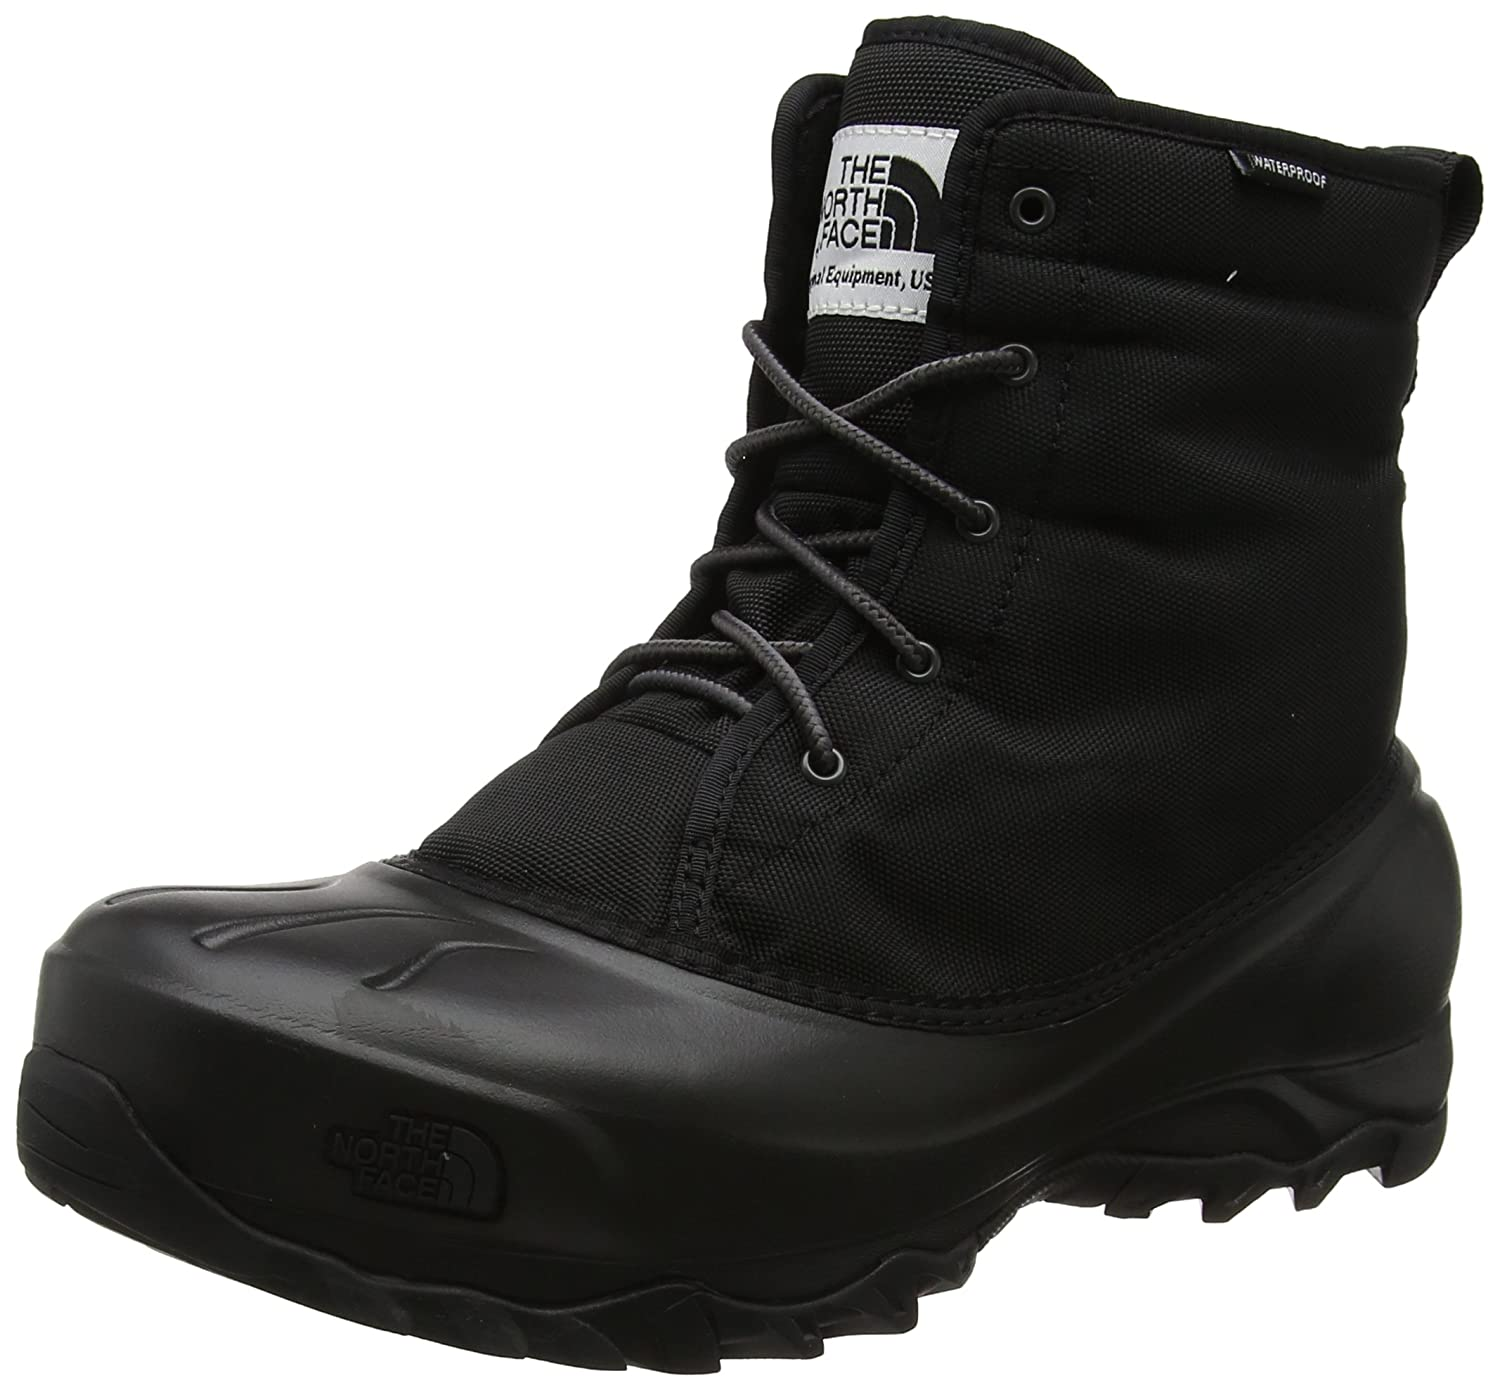 TALLA 45 EU. The North Face M Tsumoru Boot, Botas de Nieve para Hombre